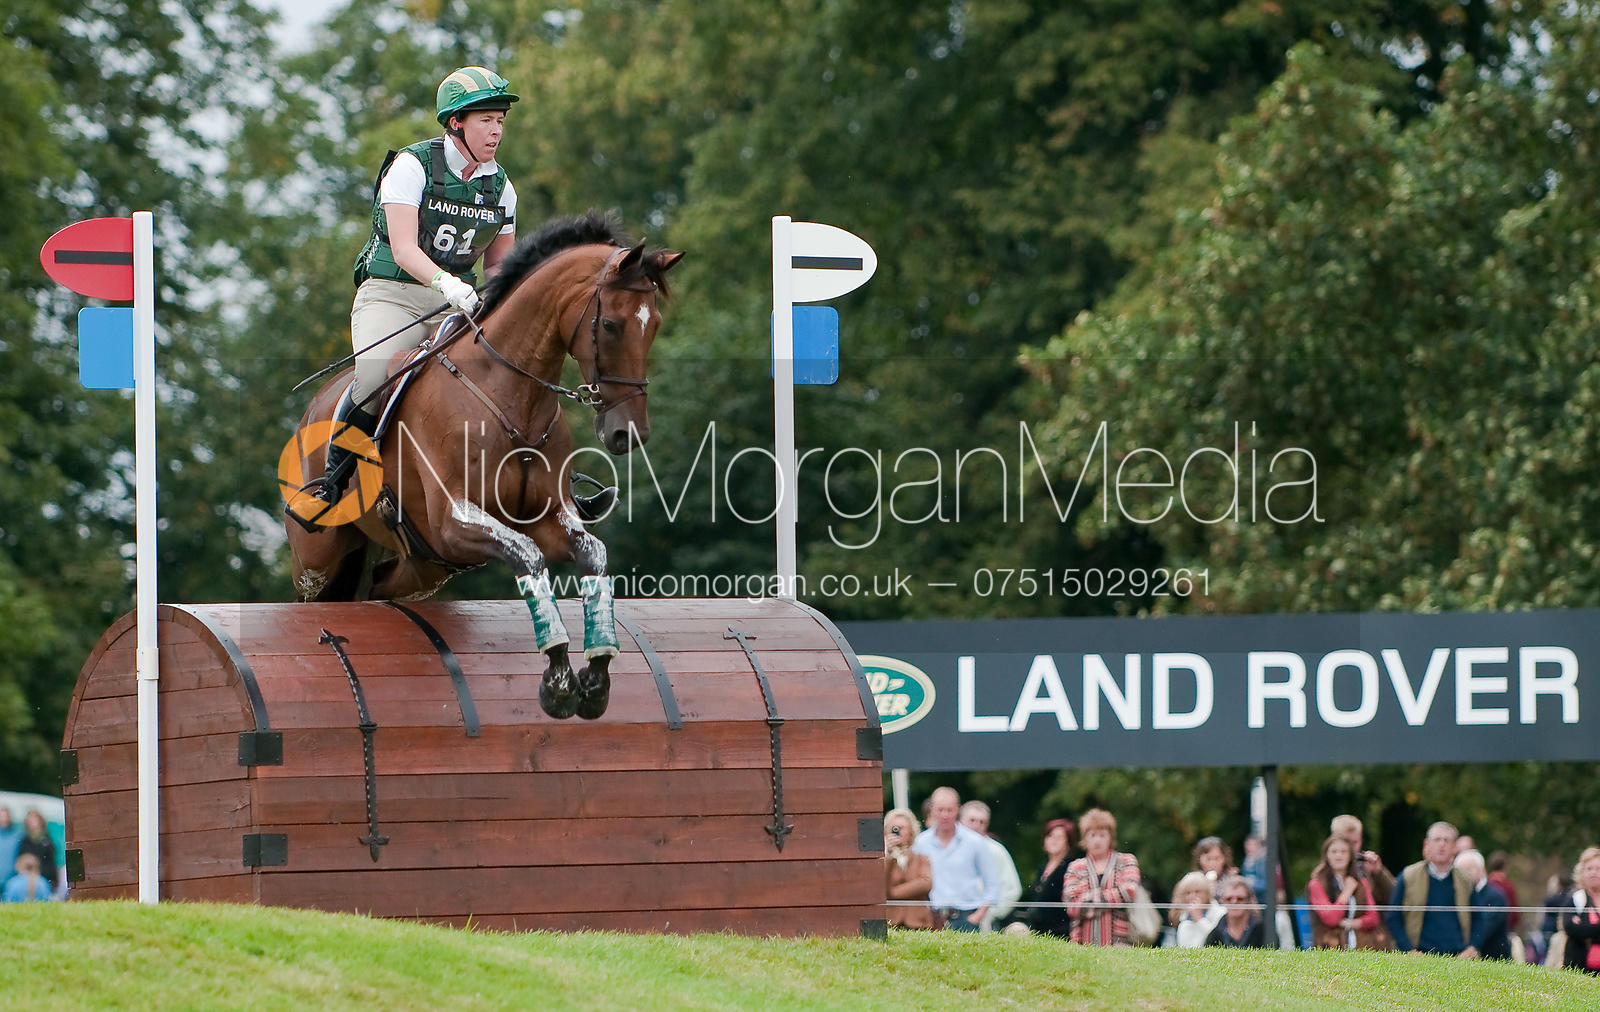 Amy Tryon and Leyland at Burghley Horse Trials 2009 - Land Rover Burghley Horse Trials 2009